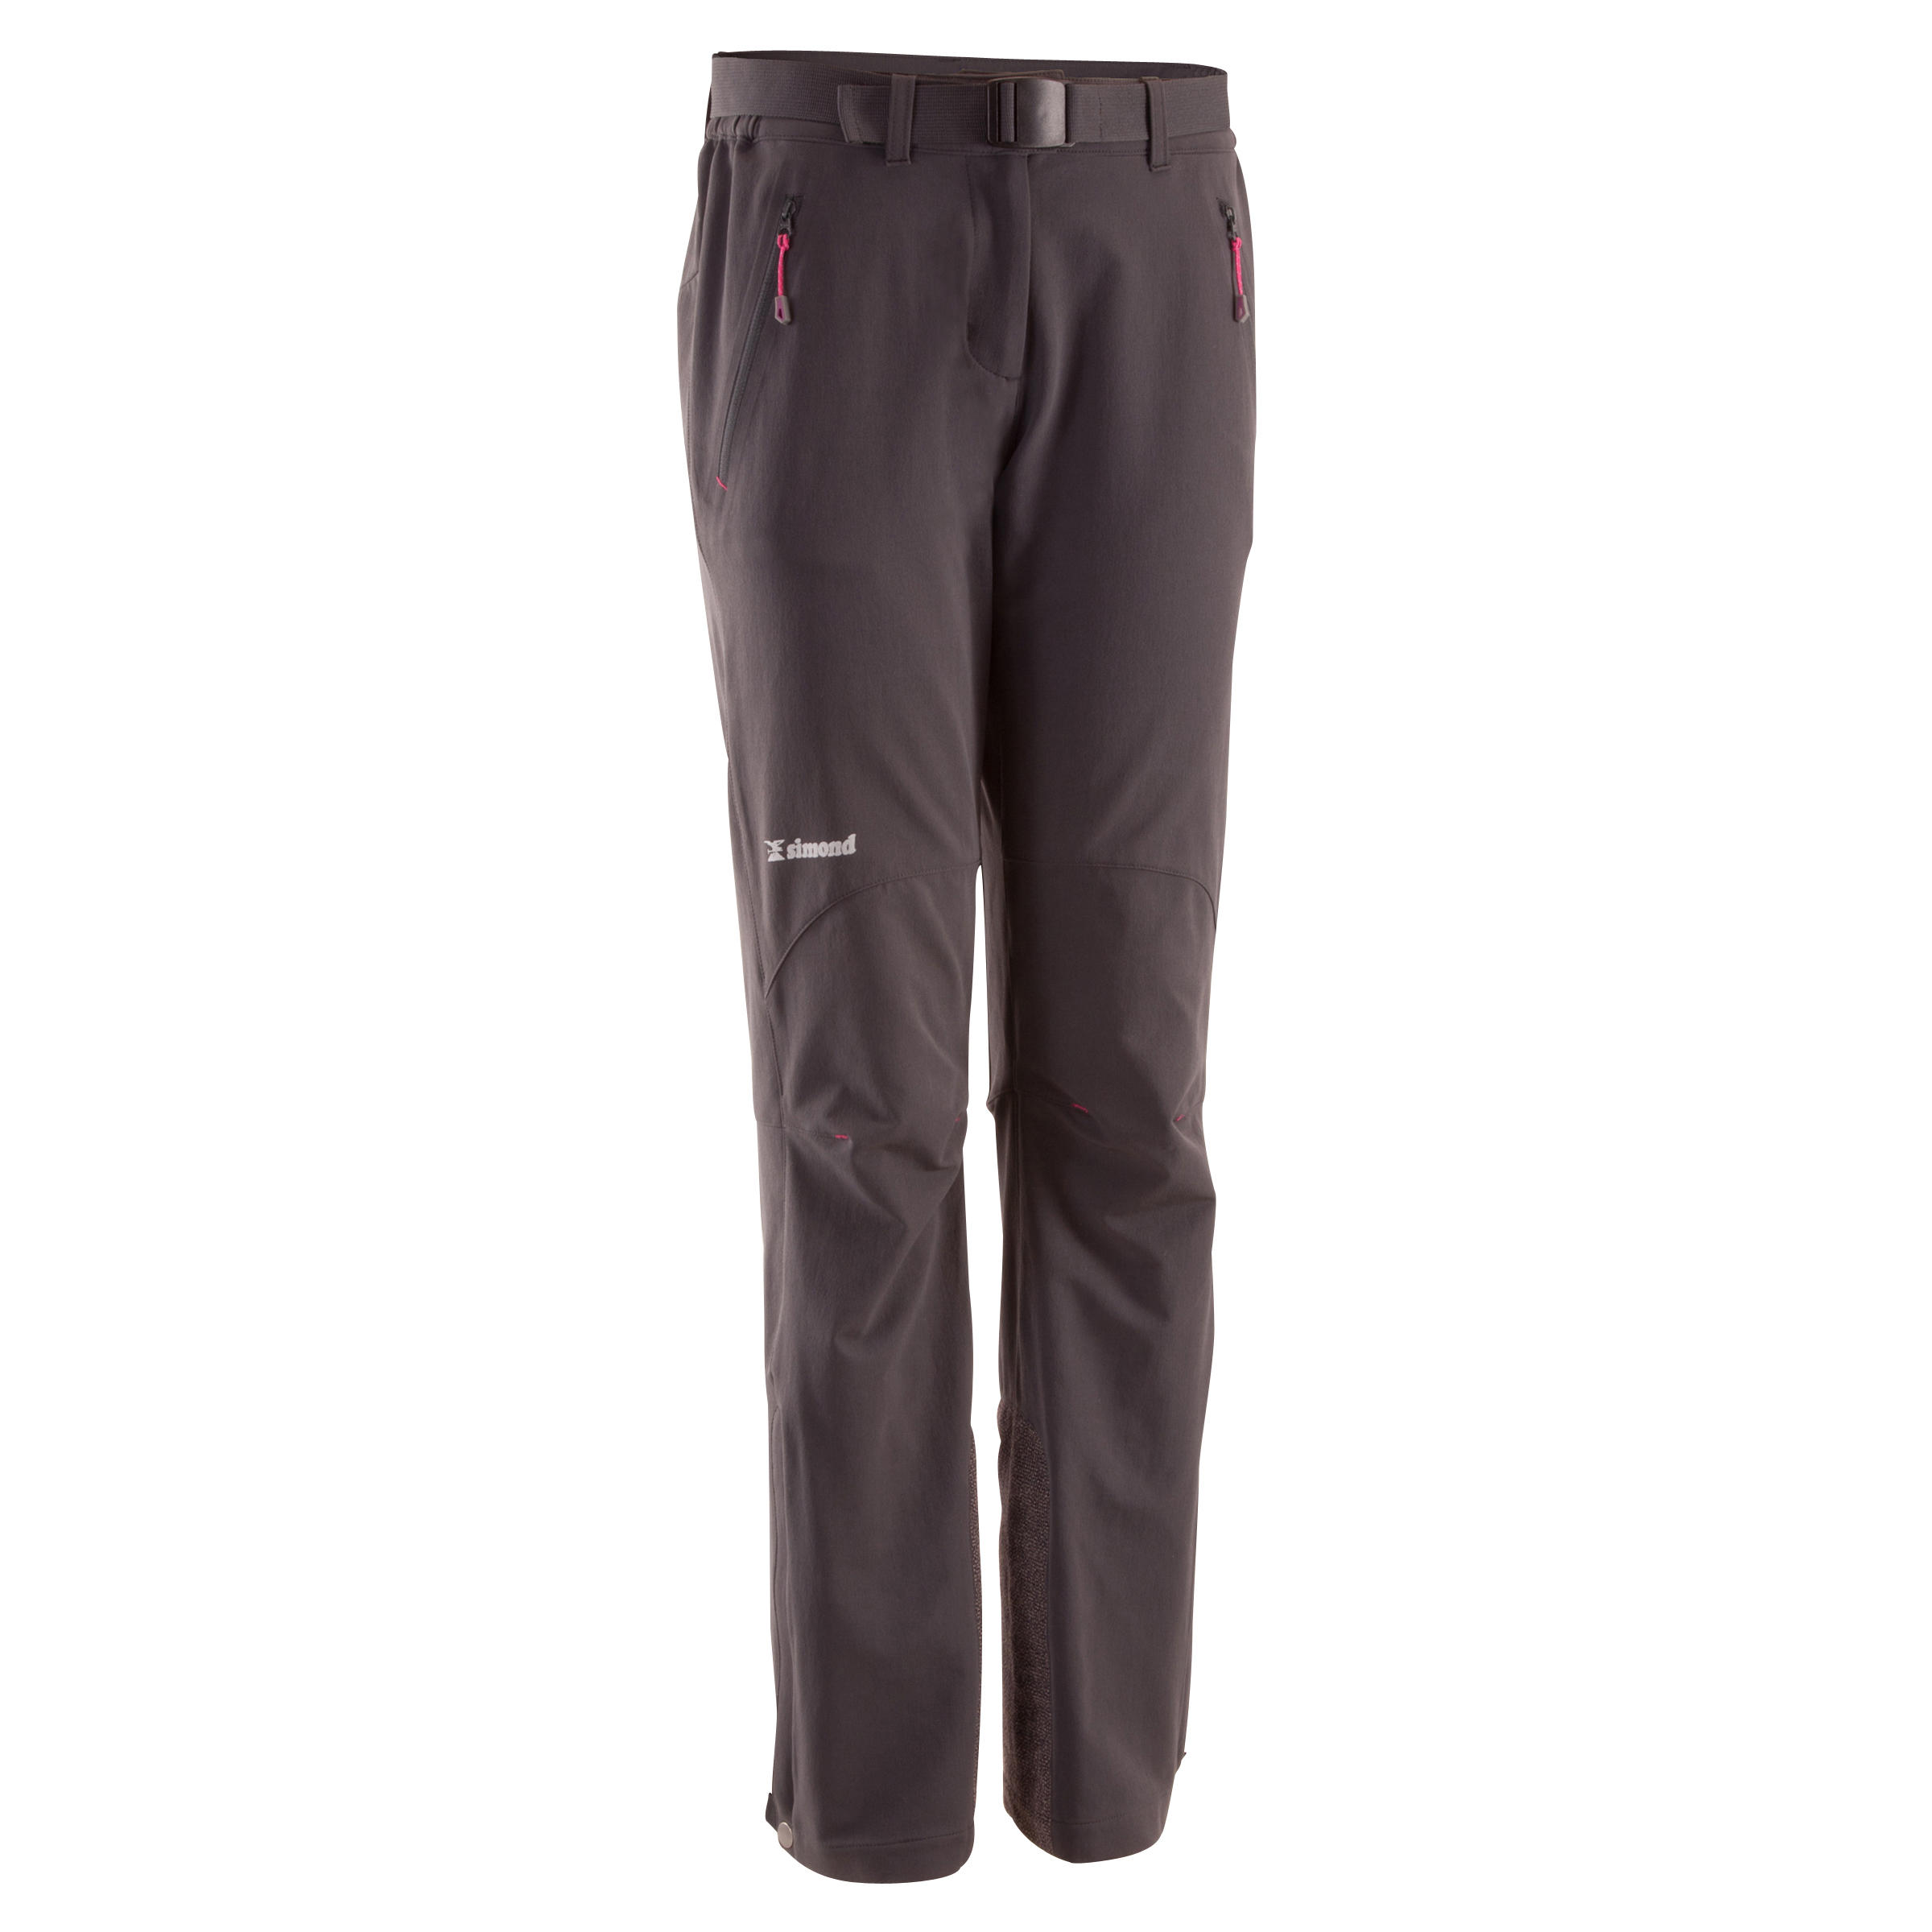 Simond Broek Alpinism Light dames